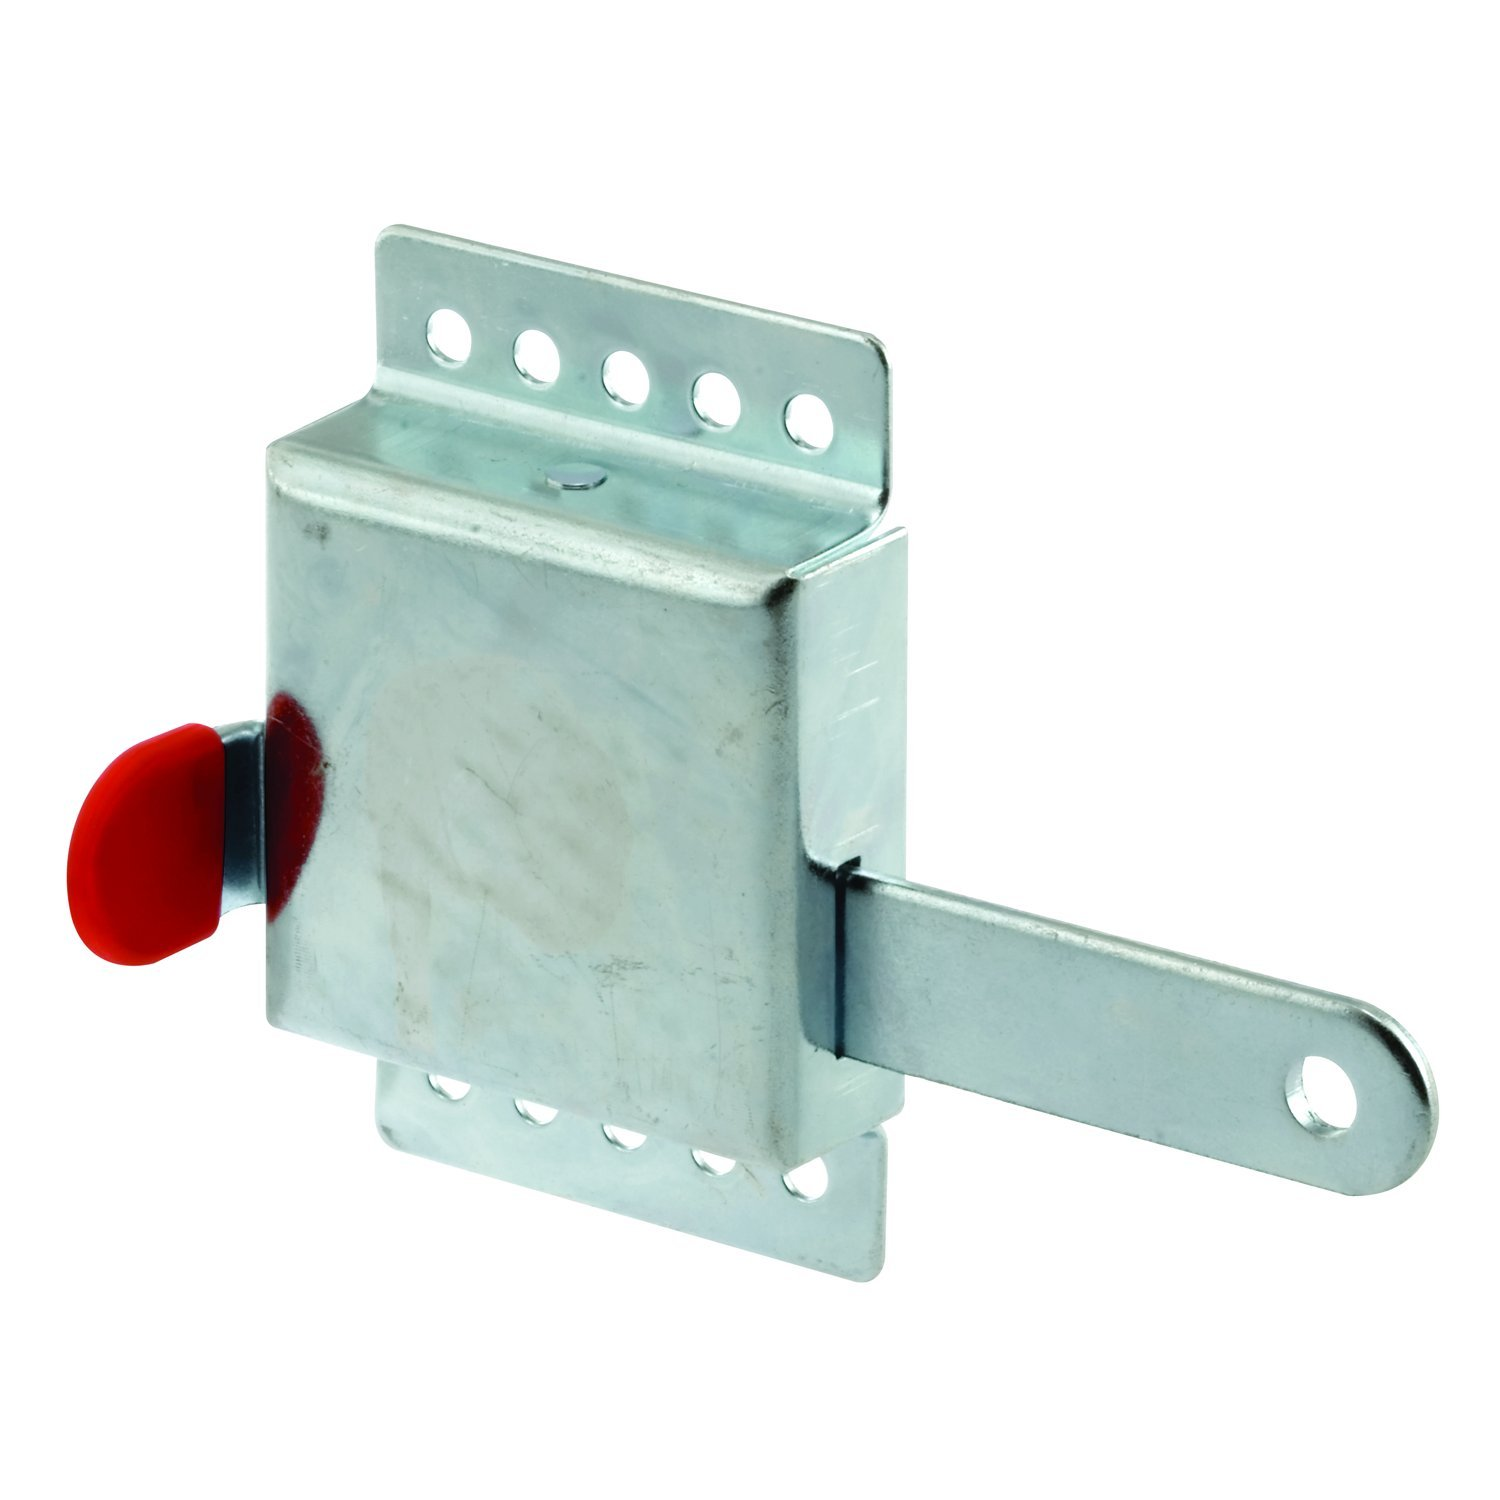 Prime-Line GD 52118 Inside Deadlock – Heavy Duty Galvanized Steel Housing, Fits Most Garage Doors for Extra Protection as a Security Lock - 7/8 x 1/8, Steel PRIME LINE PRODUCTS